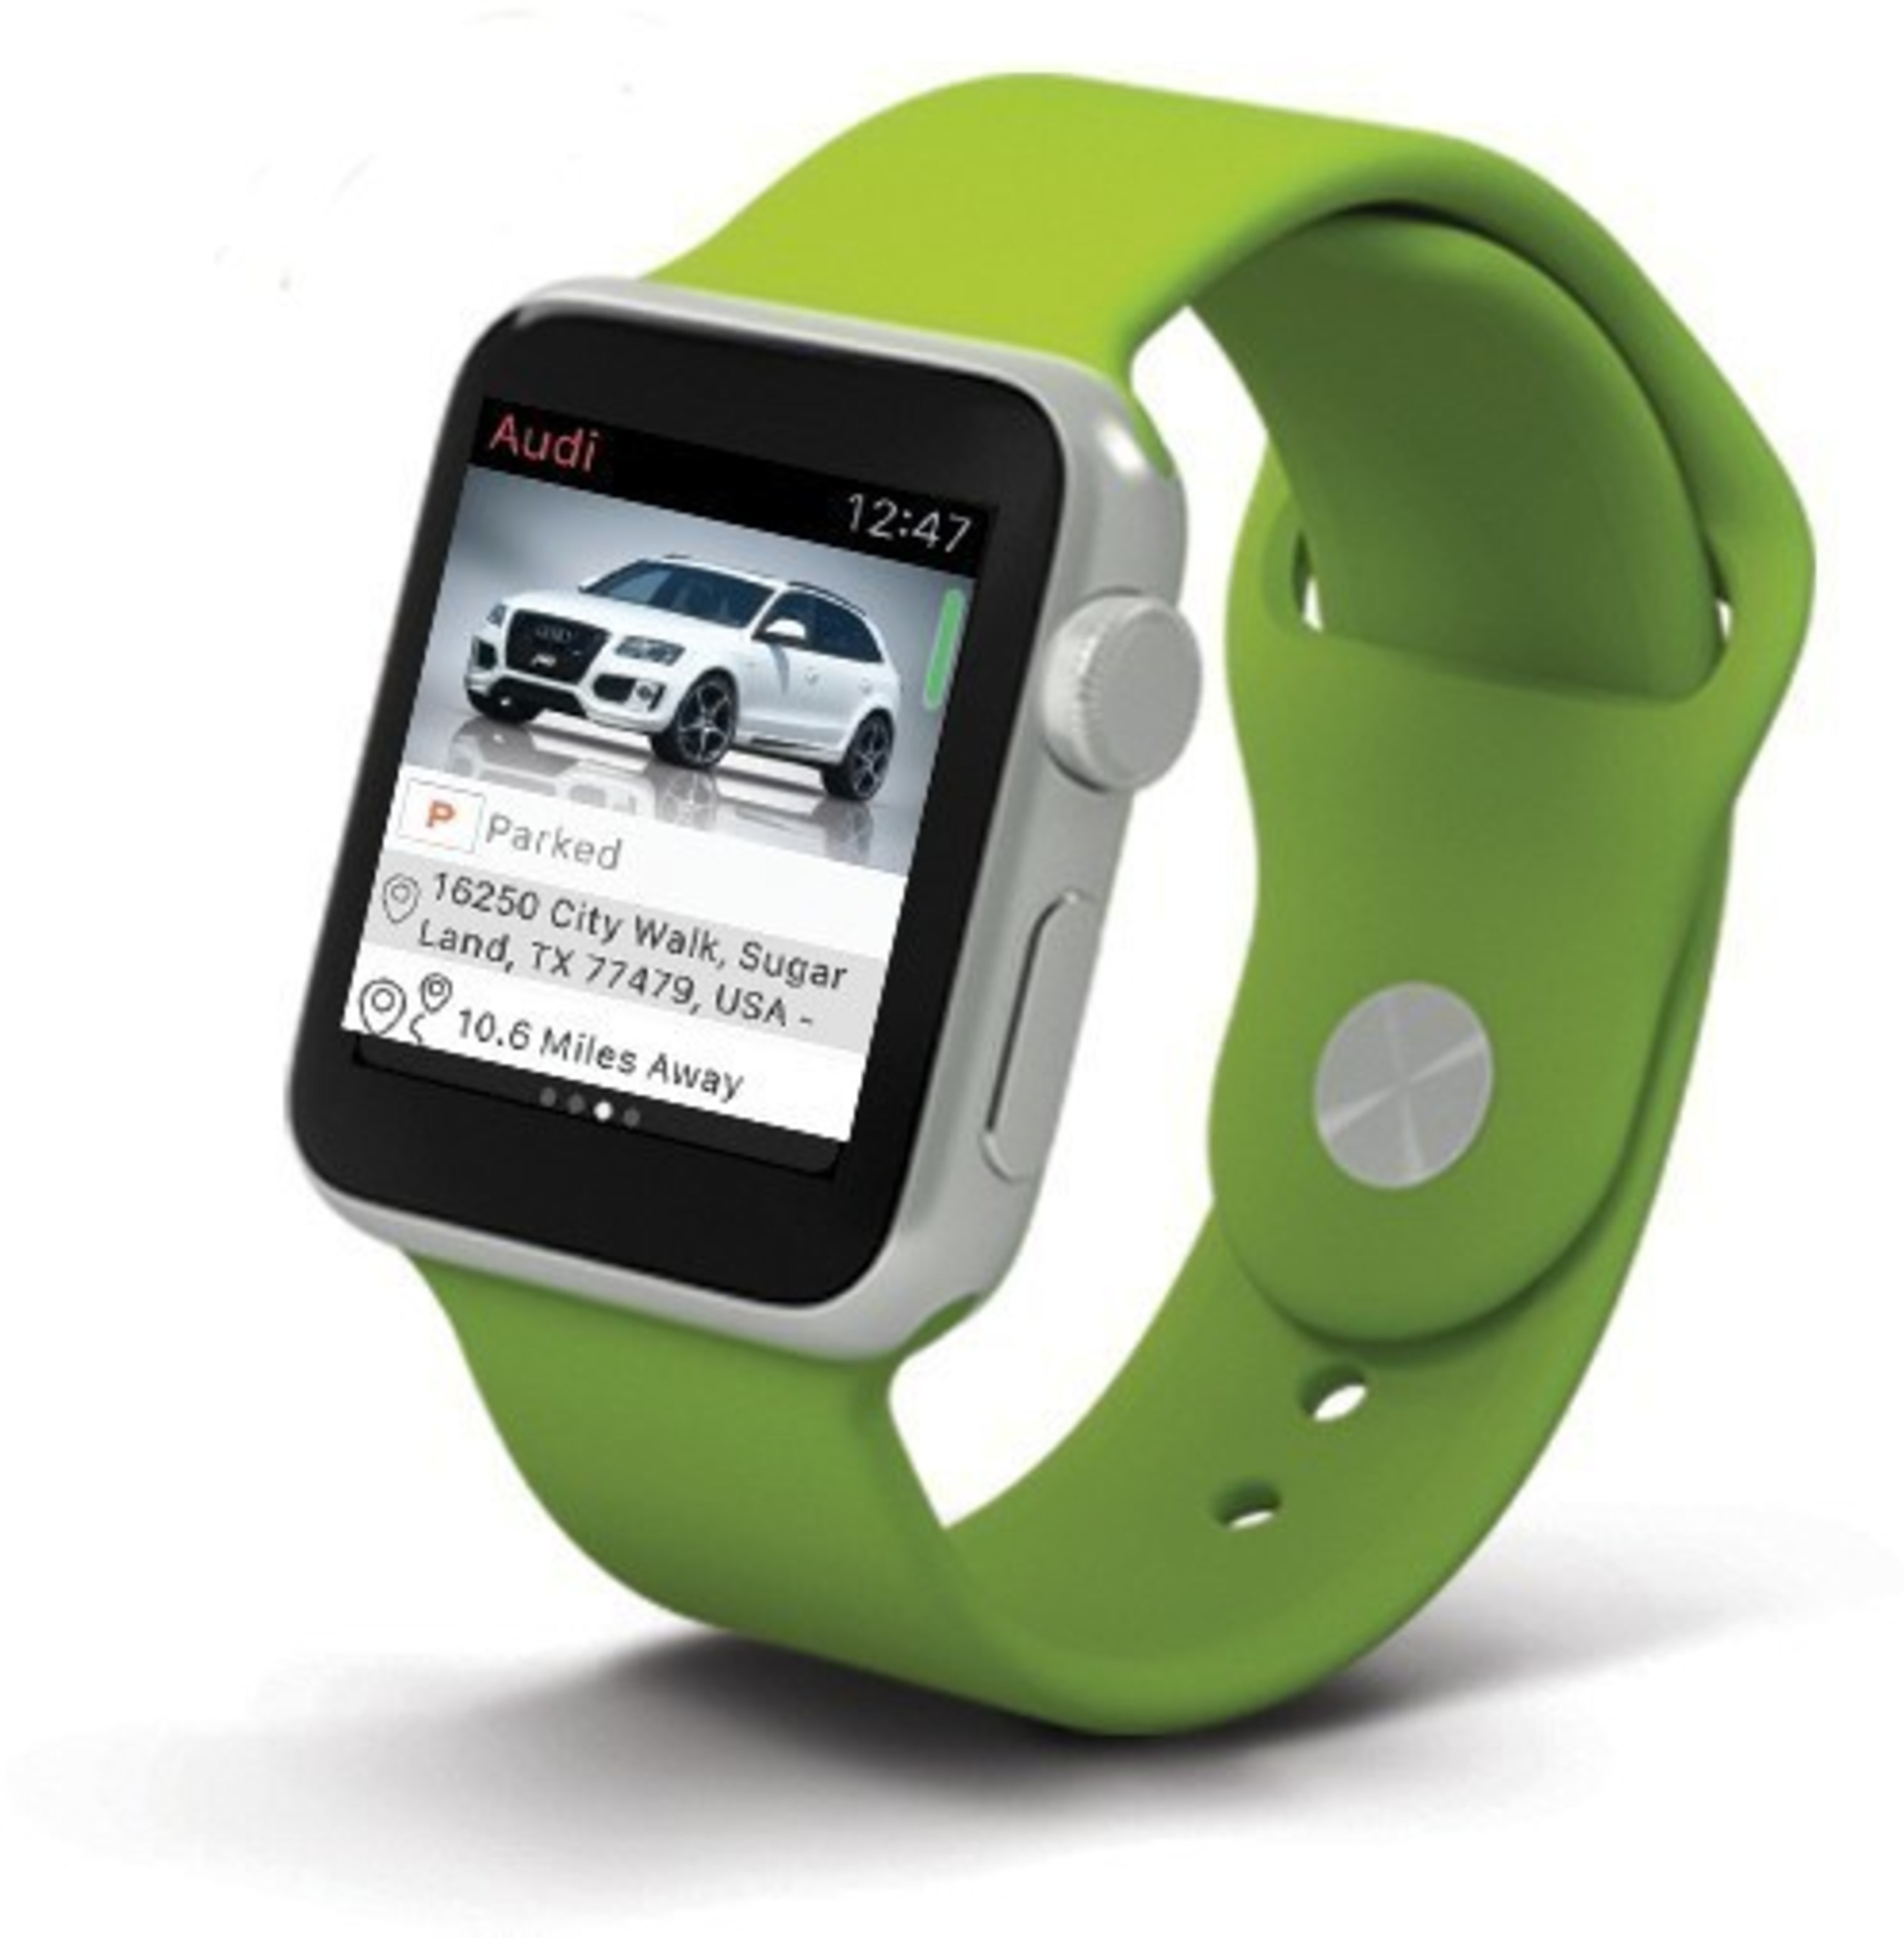 Apple Watch Car Starter and Vehicle Management App Announced by Connect2Car